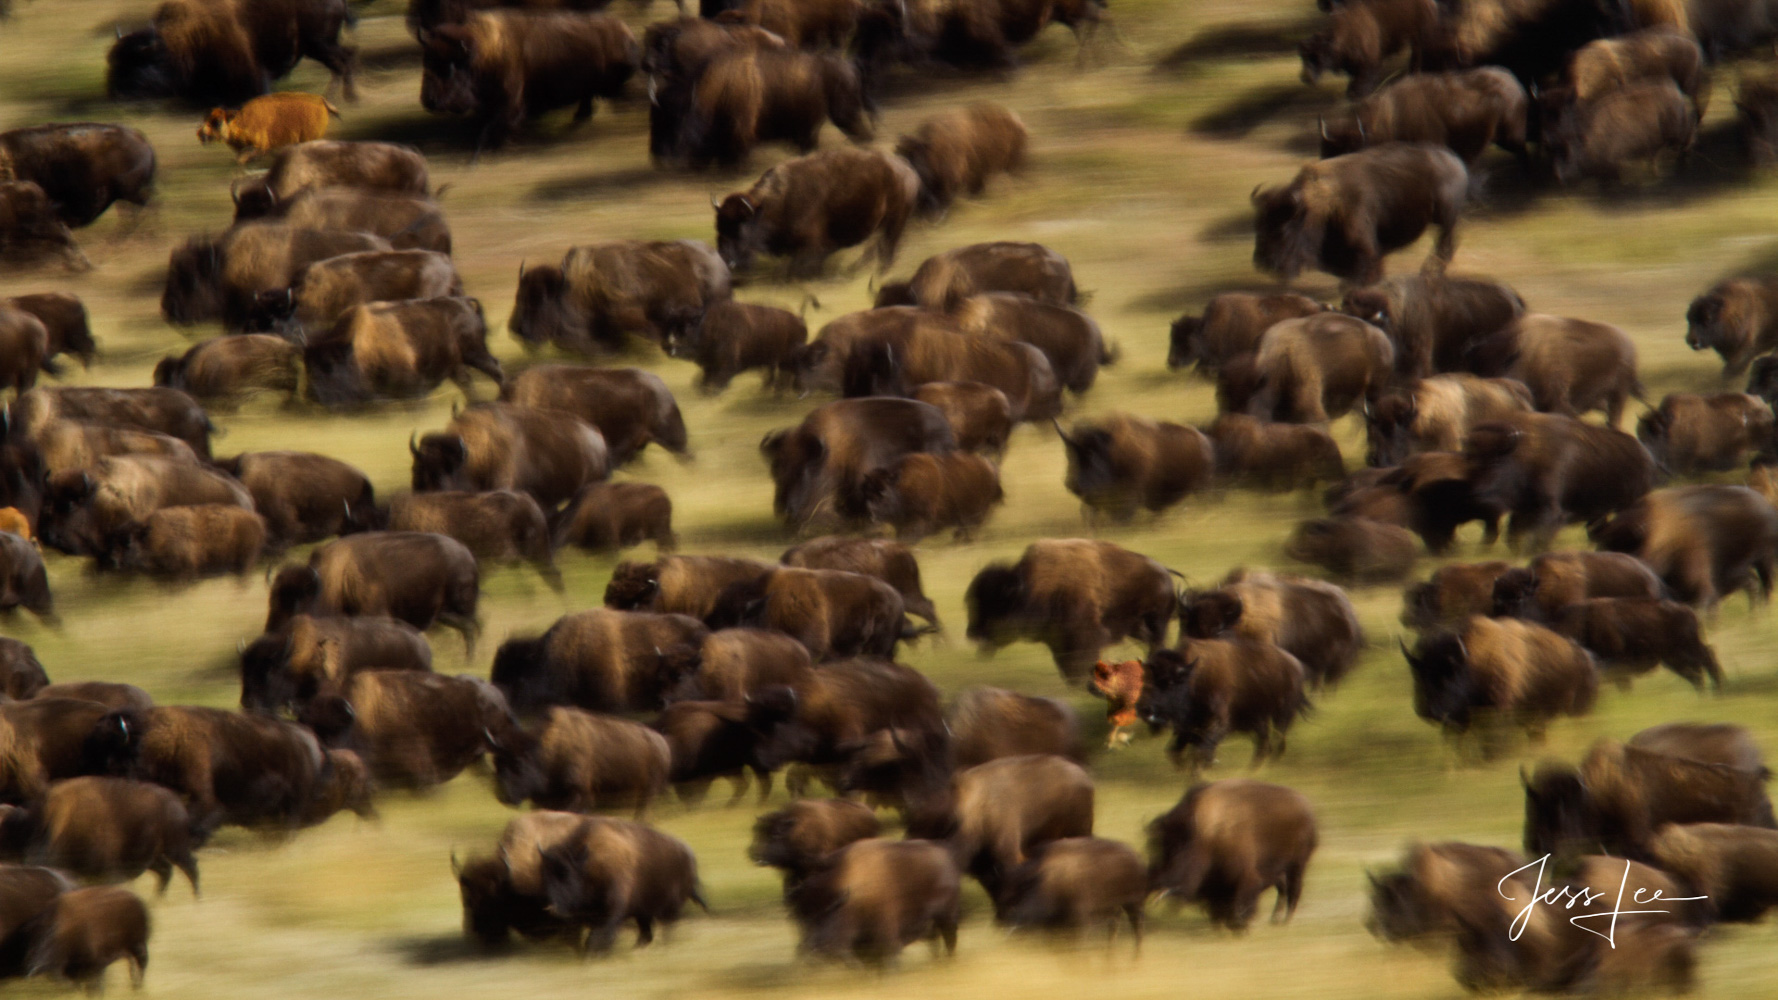 Fine Art Limited Edition Photography of American Buffalo.  Yes, the ground does shake as a big herd of Bison stampedes  past....